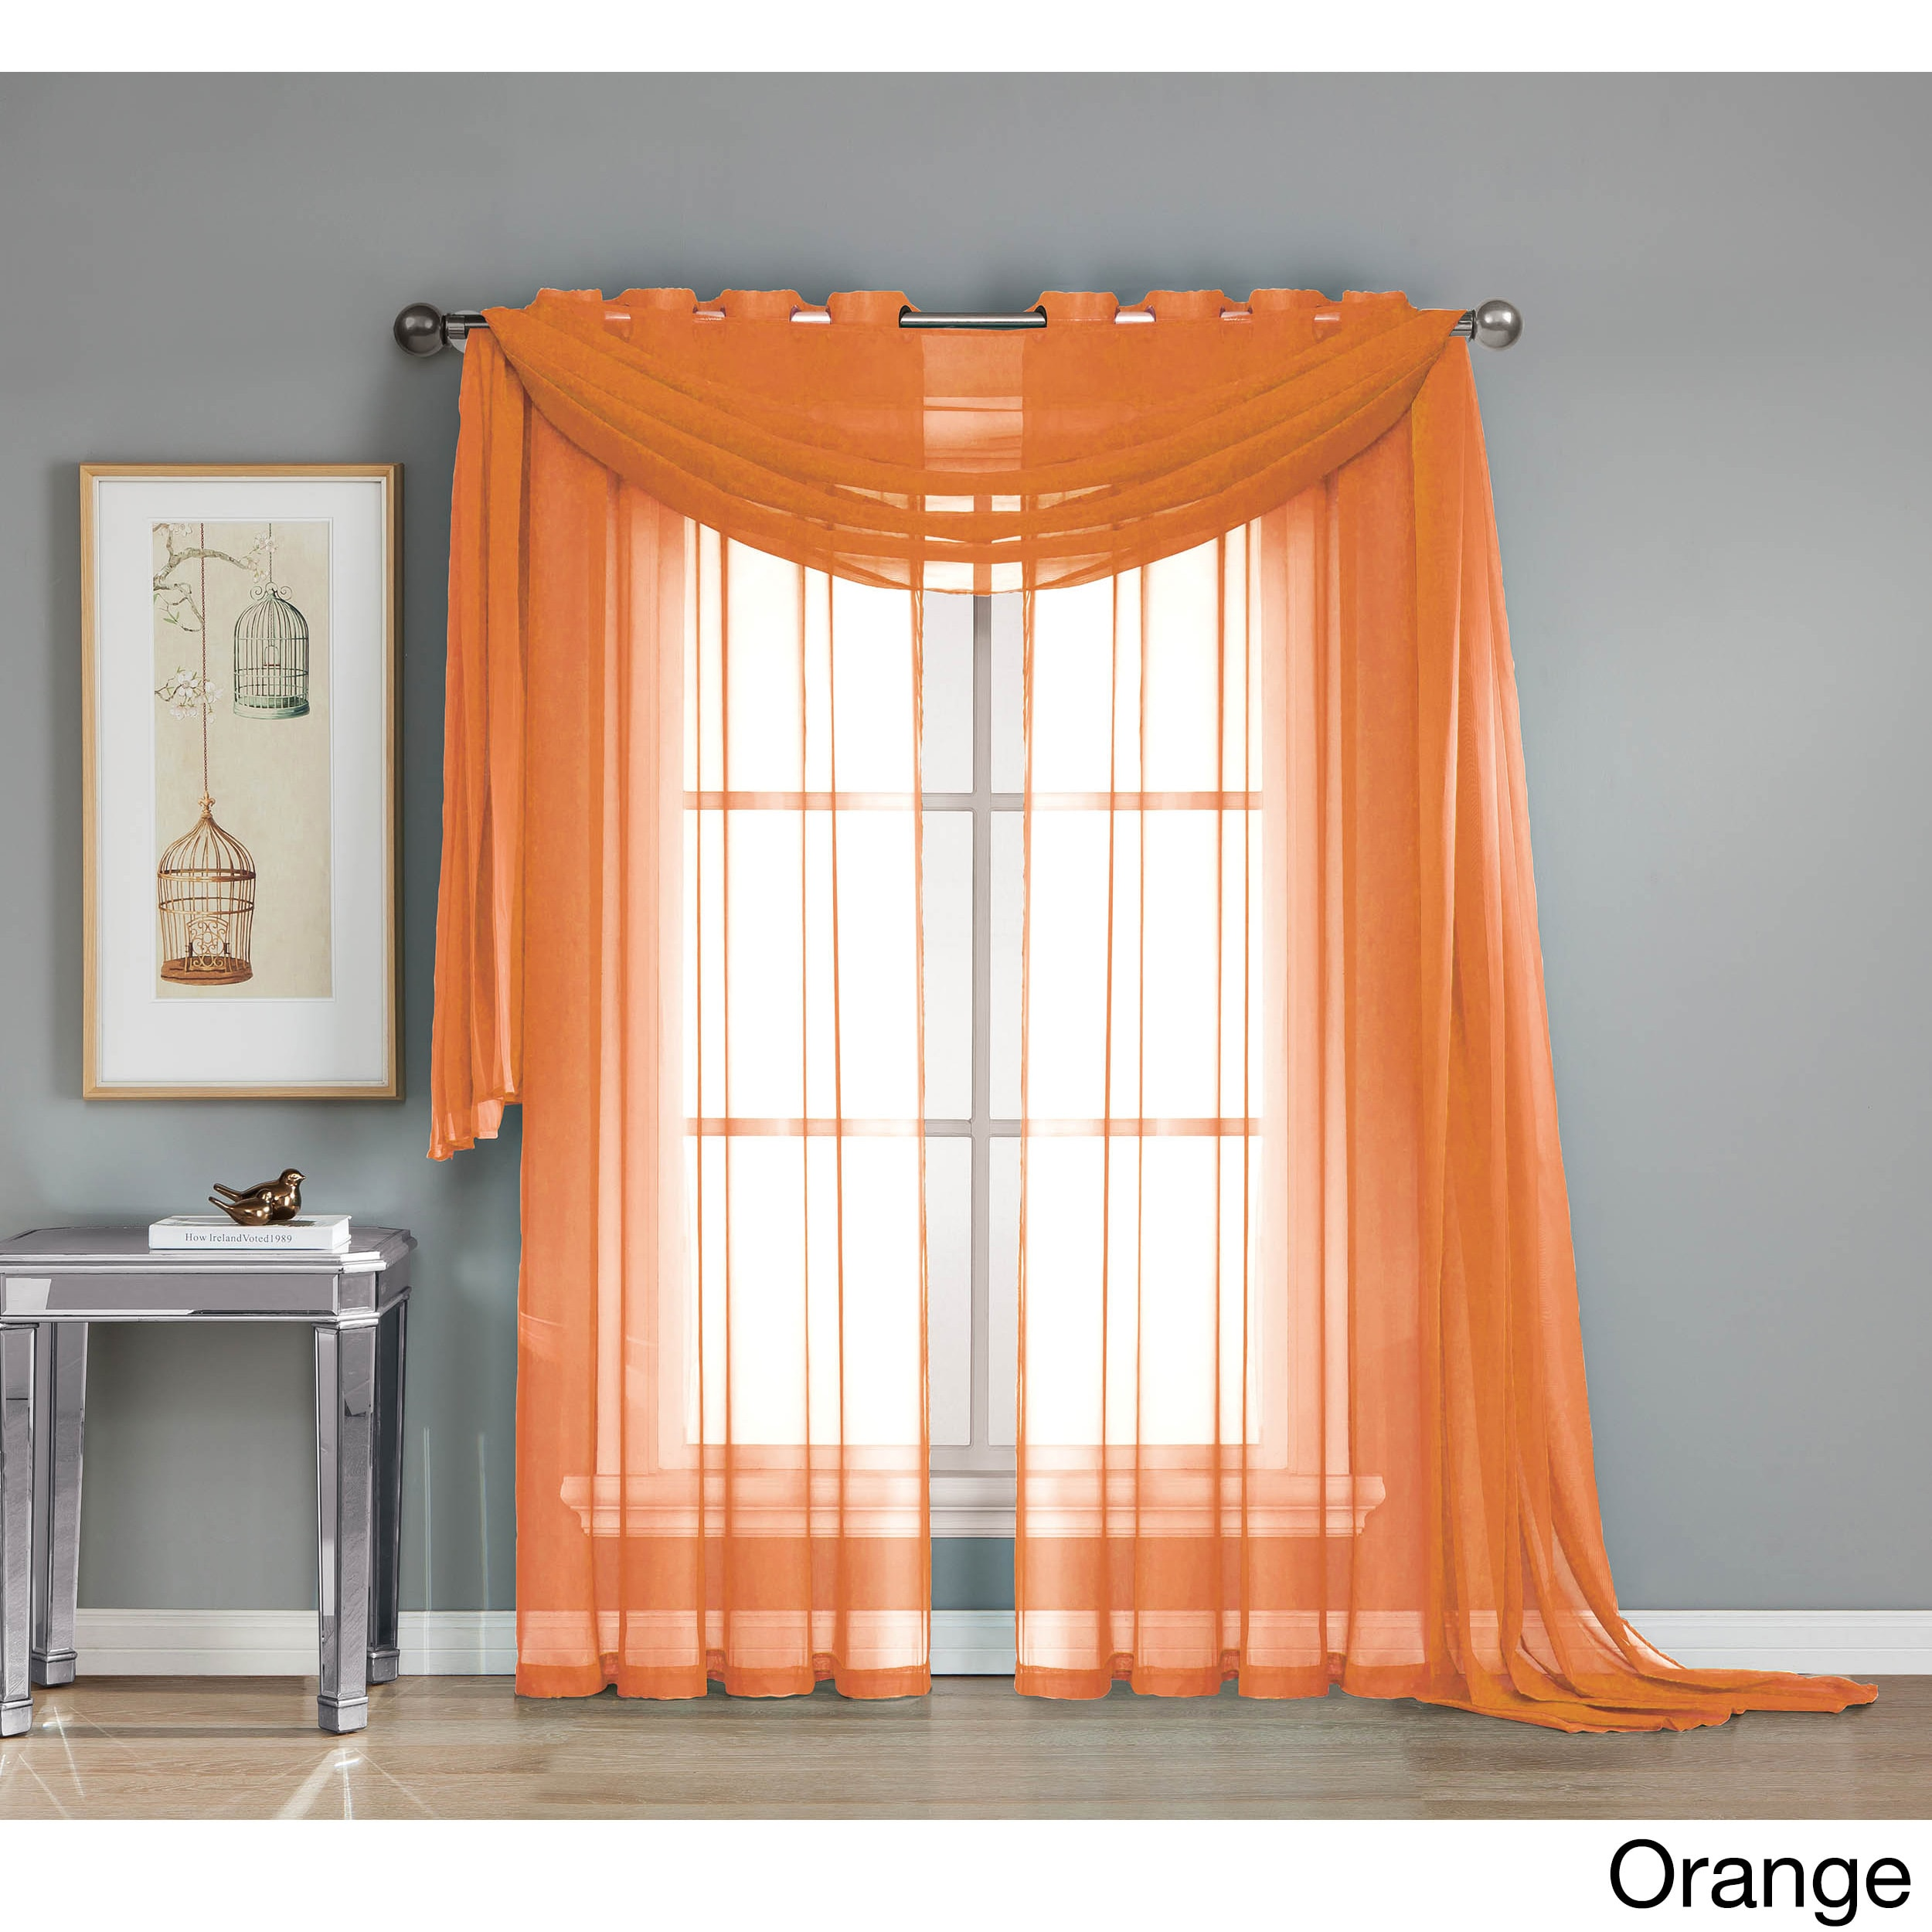 rug warm flooring pattern white of orange sofa pretty windows window curtain plaid full oak valance size valances for decorations brown bedroom woven laminate grey black leather and green